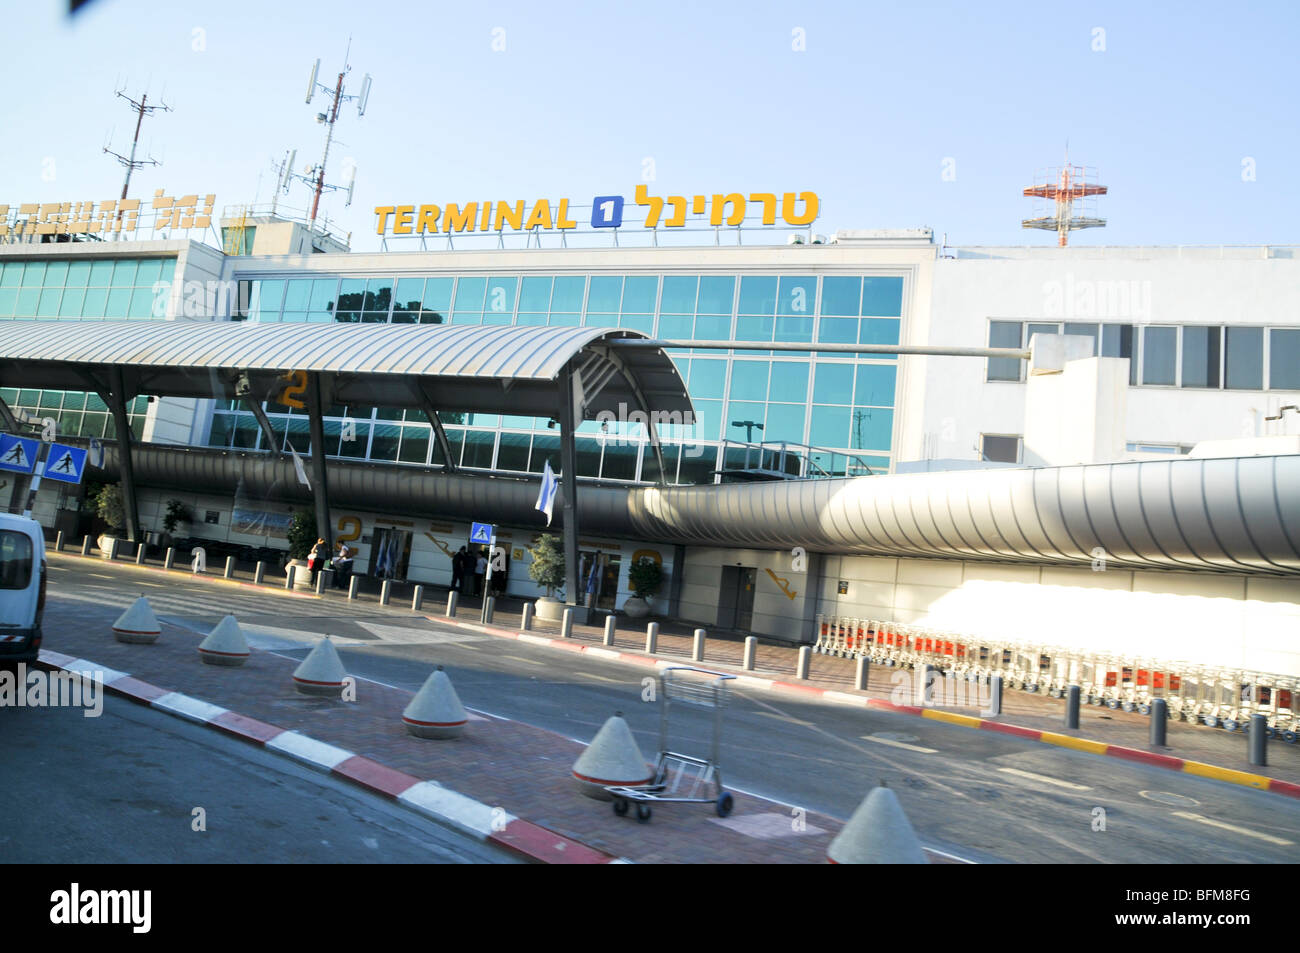 Israel, Ben-Gurion international Airport Entrance to Terminal 1 - Stock Image